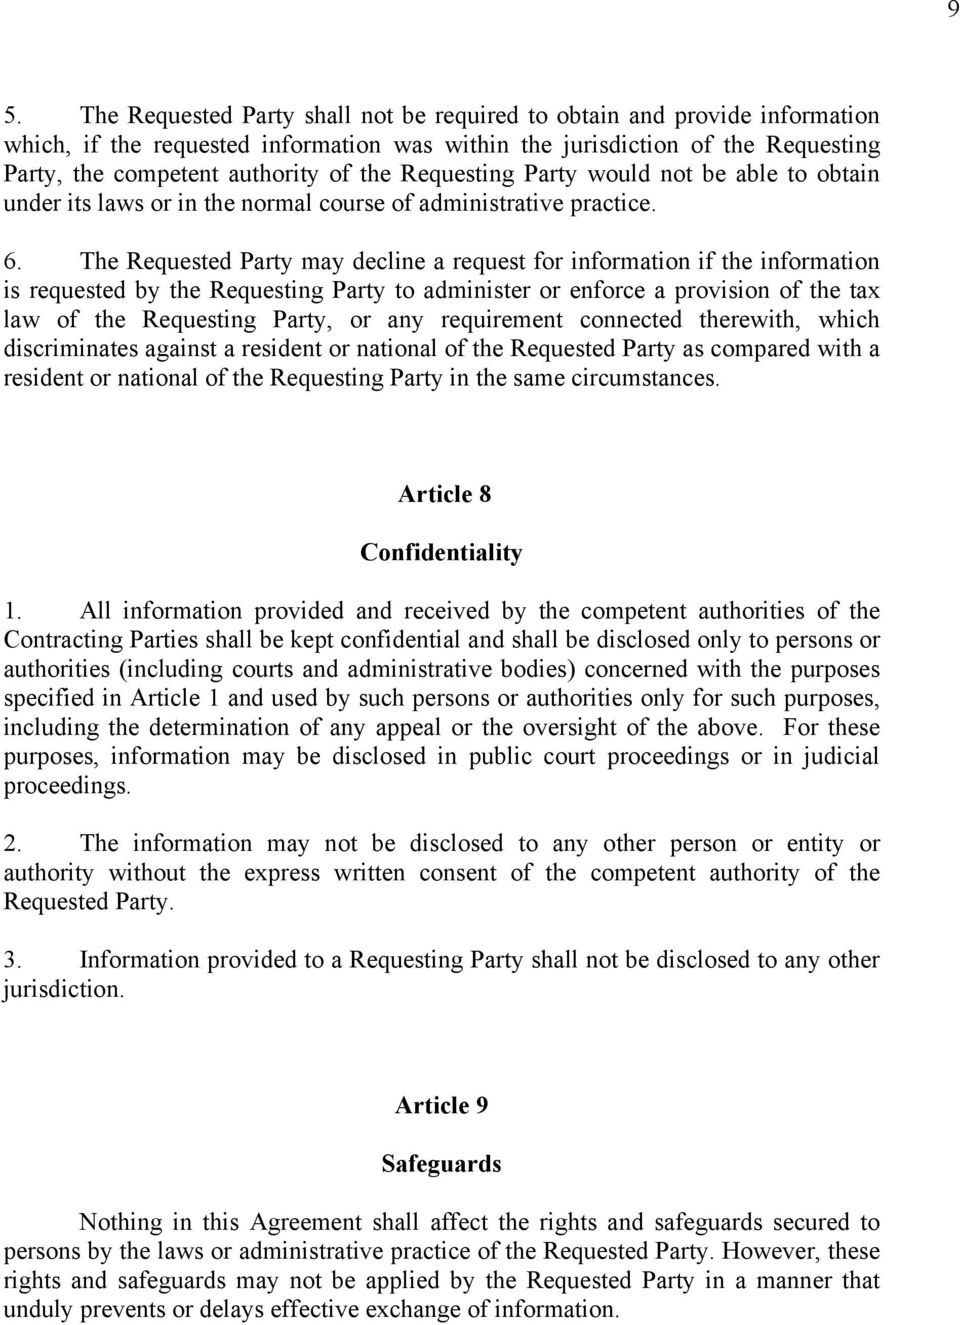 The Requested Party may decline a request for information if the information is requested by the Requesting Party to administer or enforce a provision of the tax law of the Requesting Party, or any